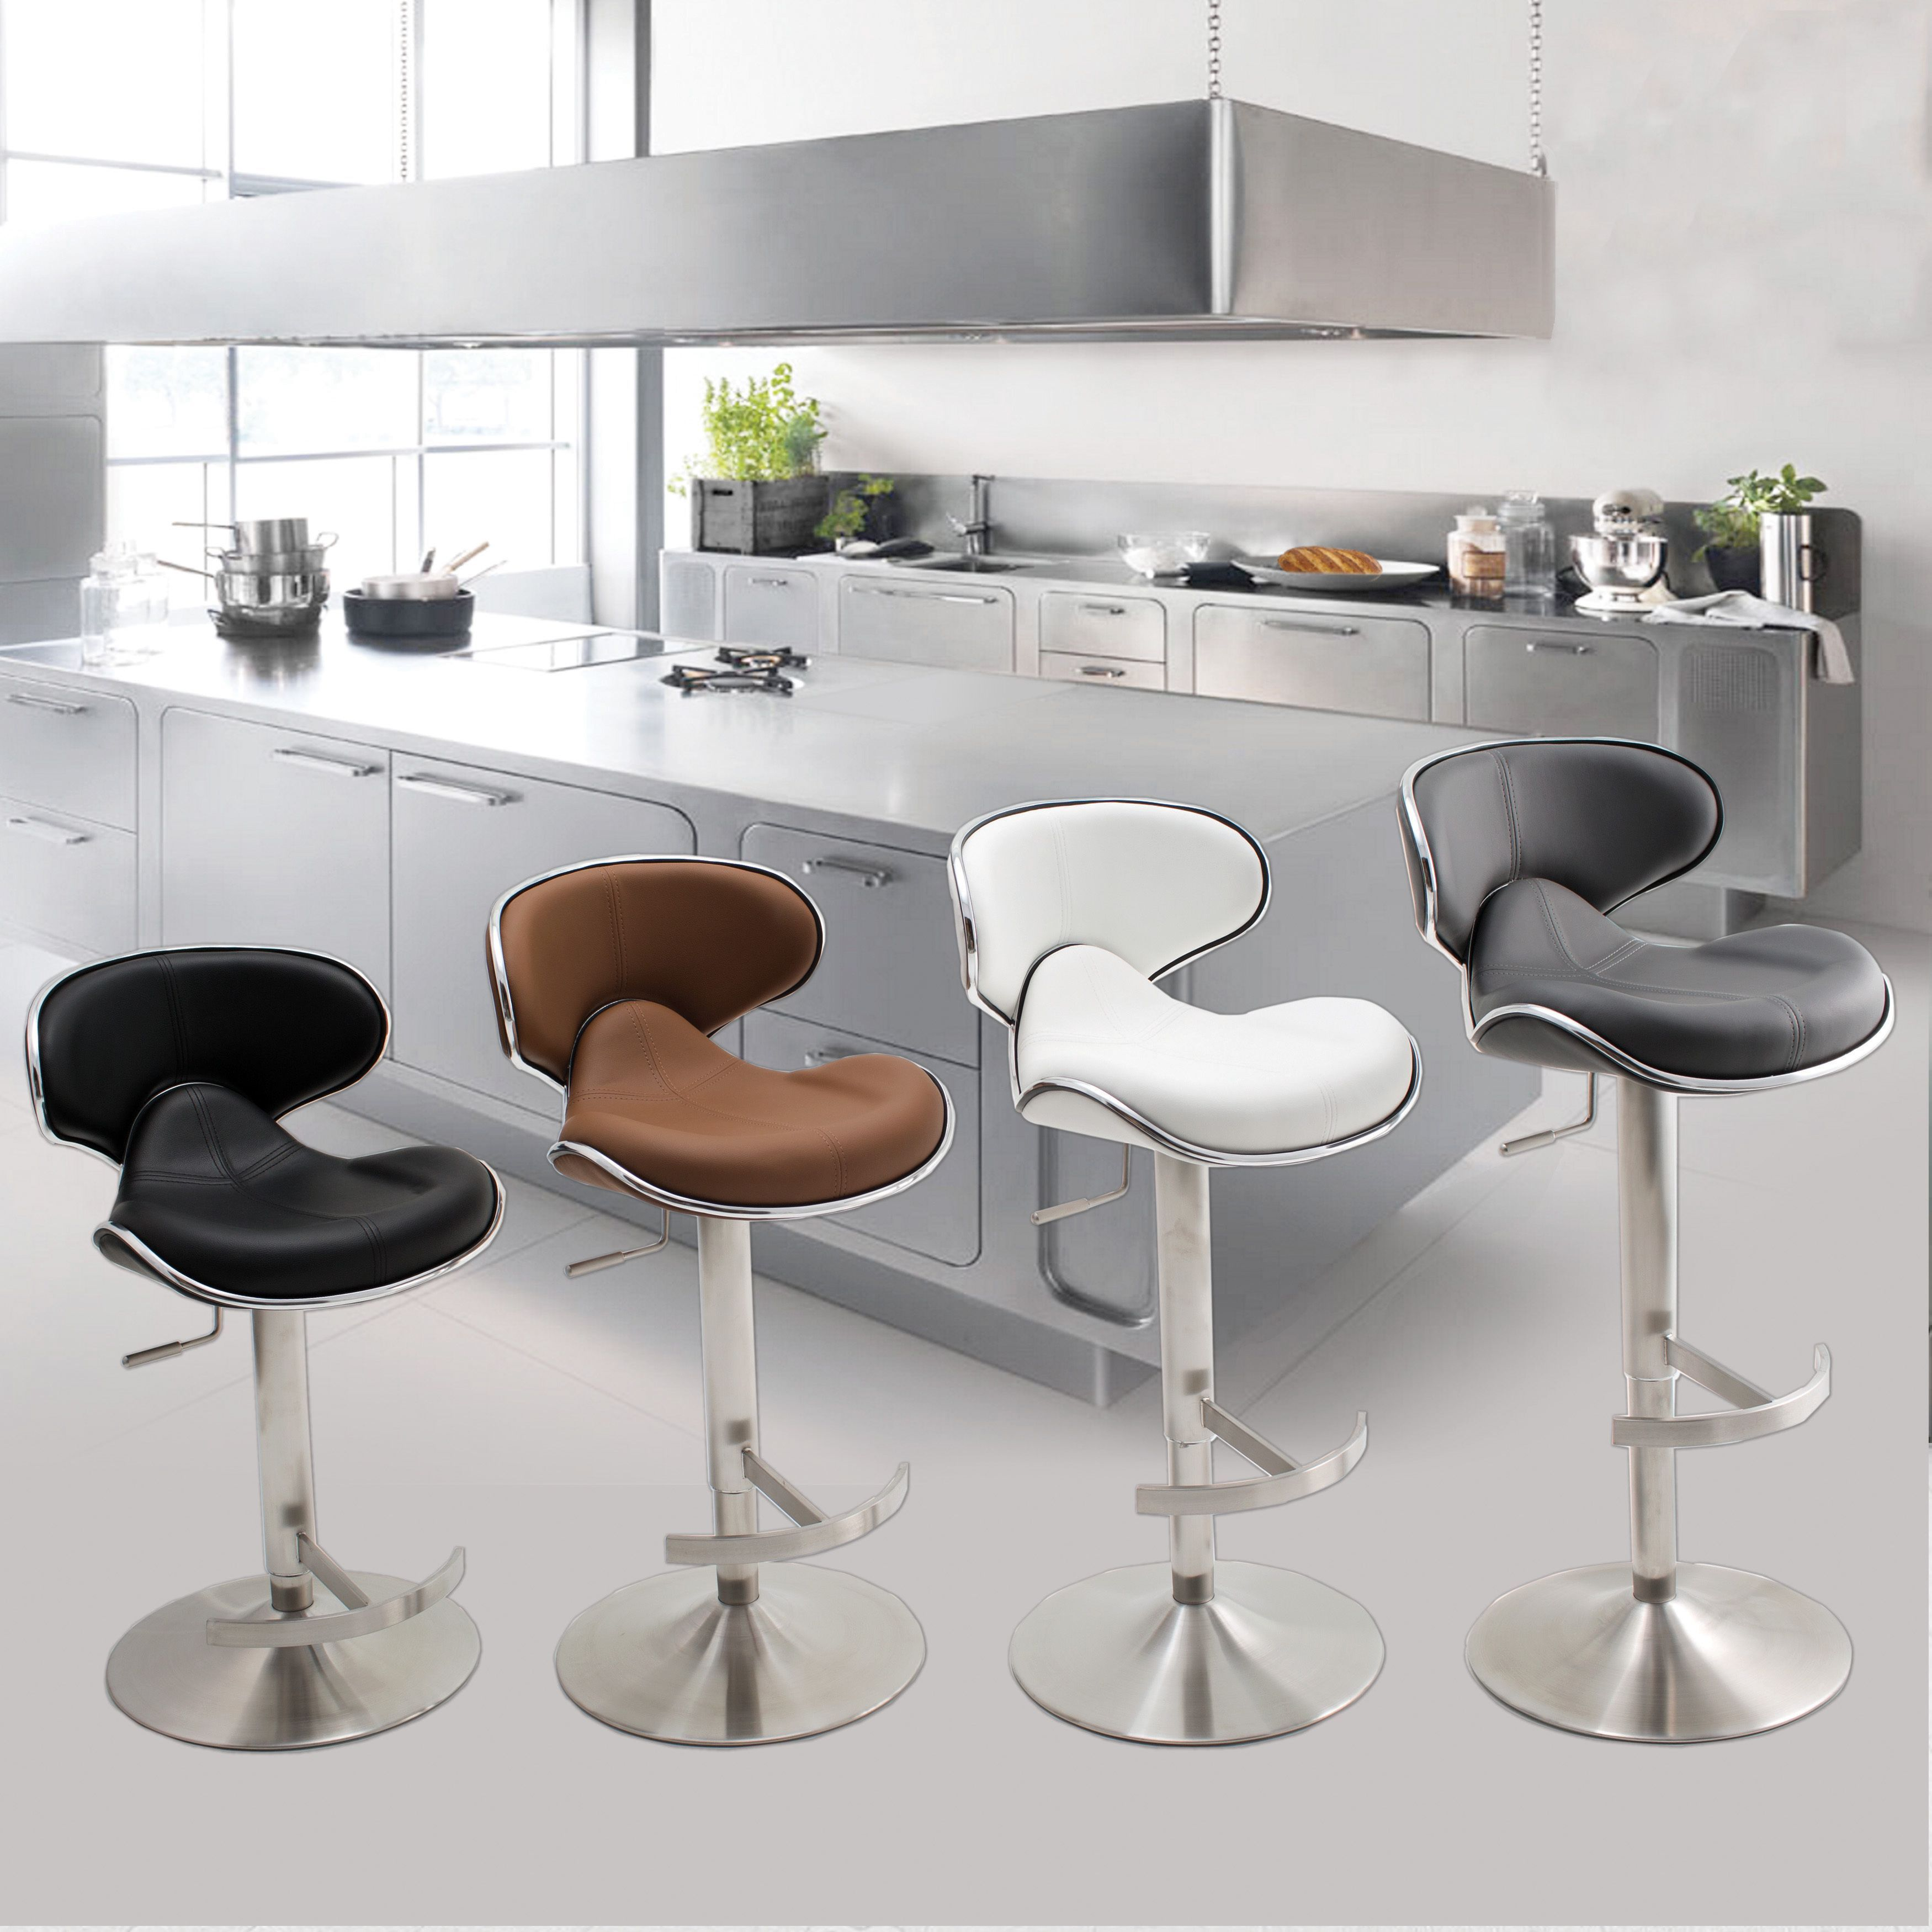 Mix Ecco Brushed Stainless Steel Adjule Height Swivel Bar Stool